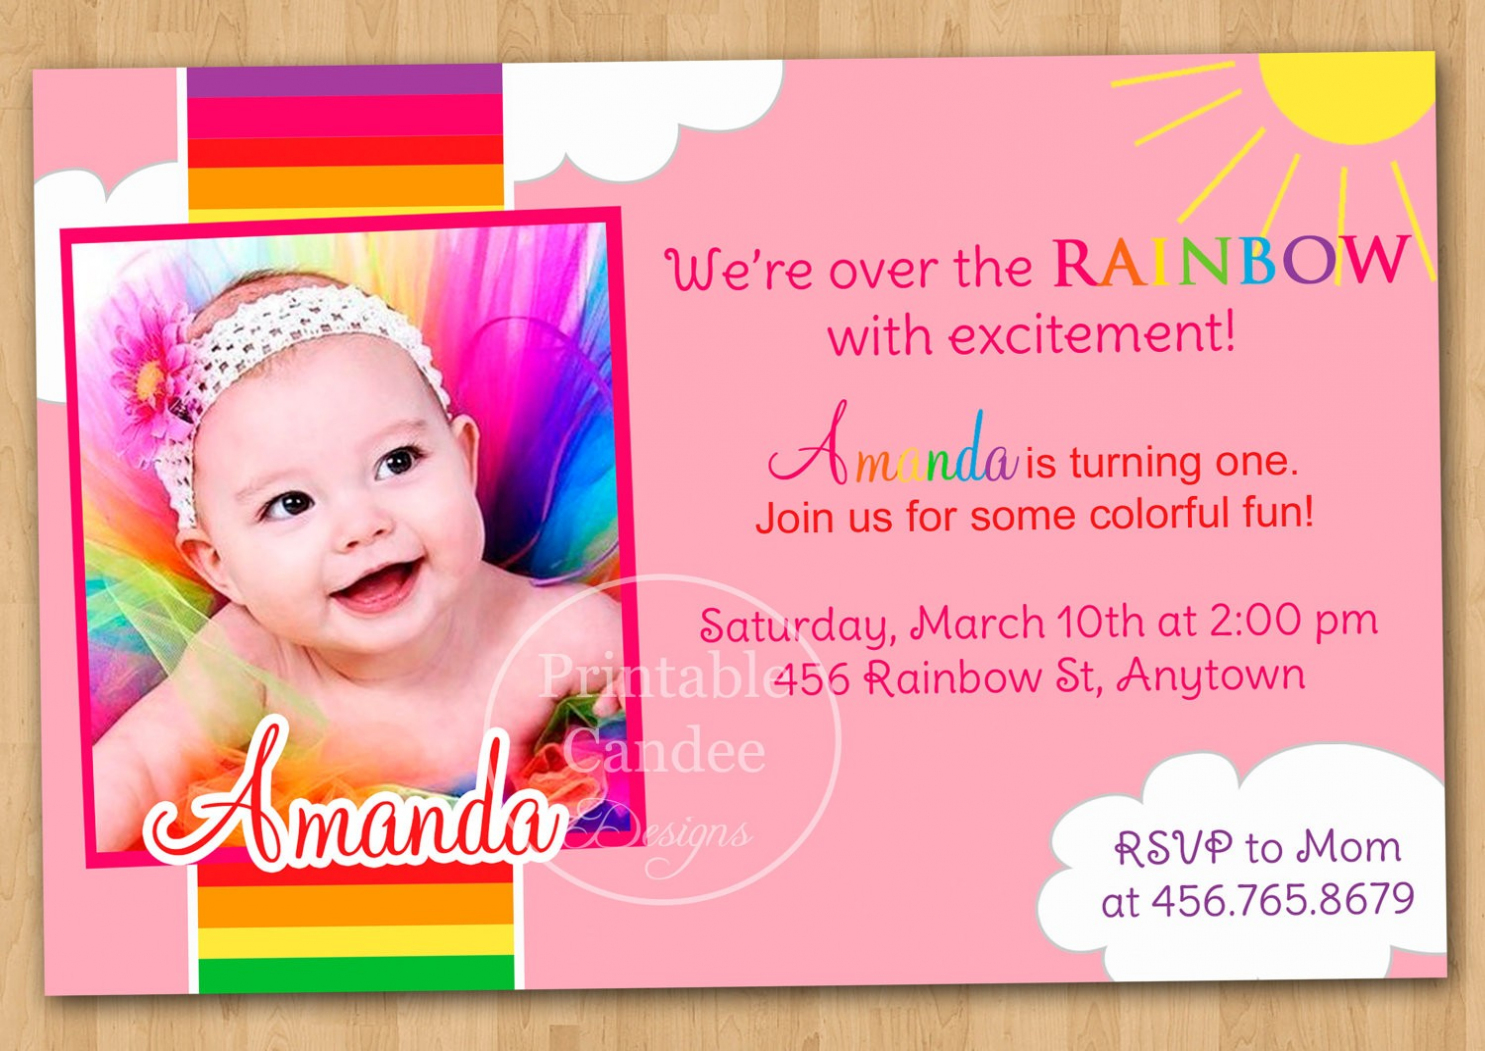 invitation card design for 1st birthday party ; birthday-invites-latest-first-birthday-invitations-design-ideas-1st-birthday-invitation-card-for-baby-girl